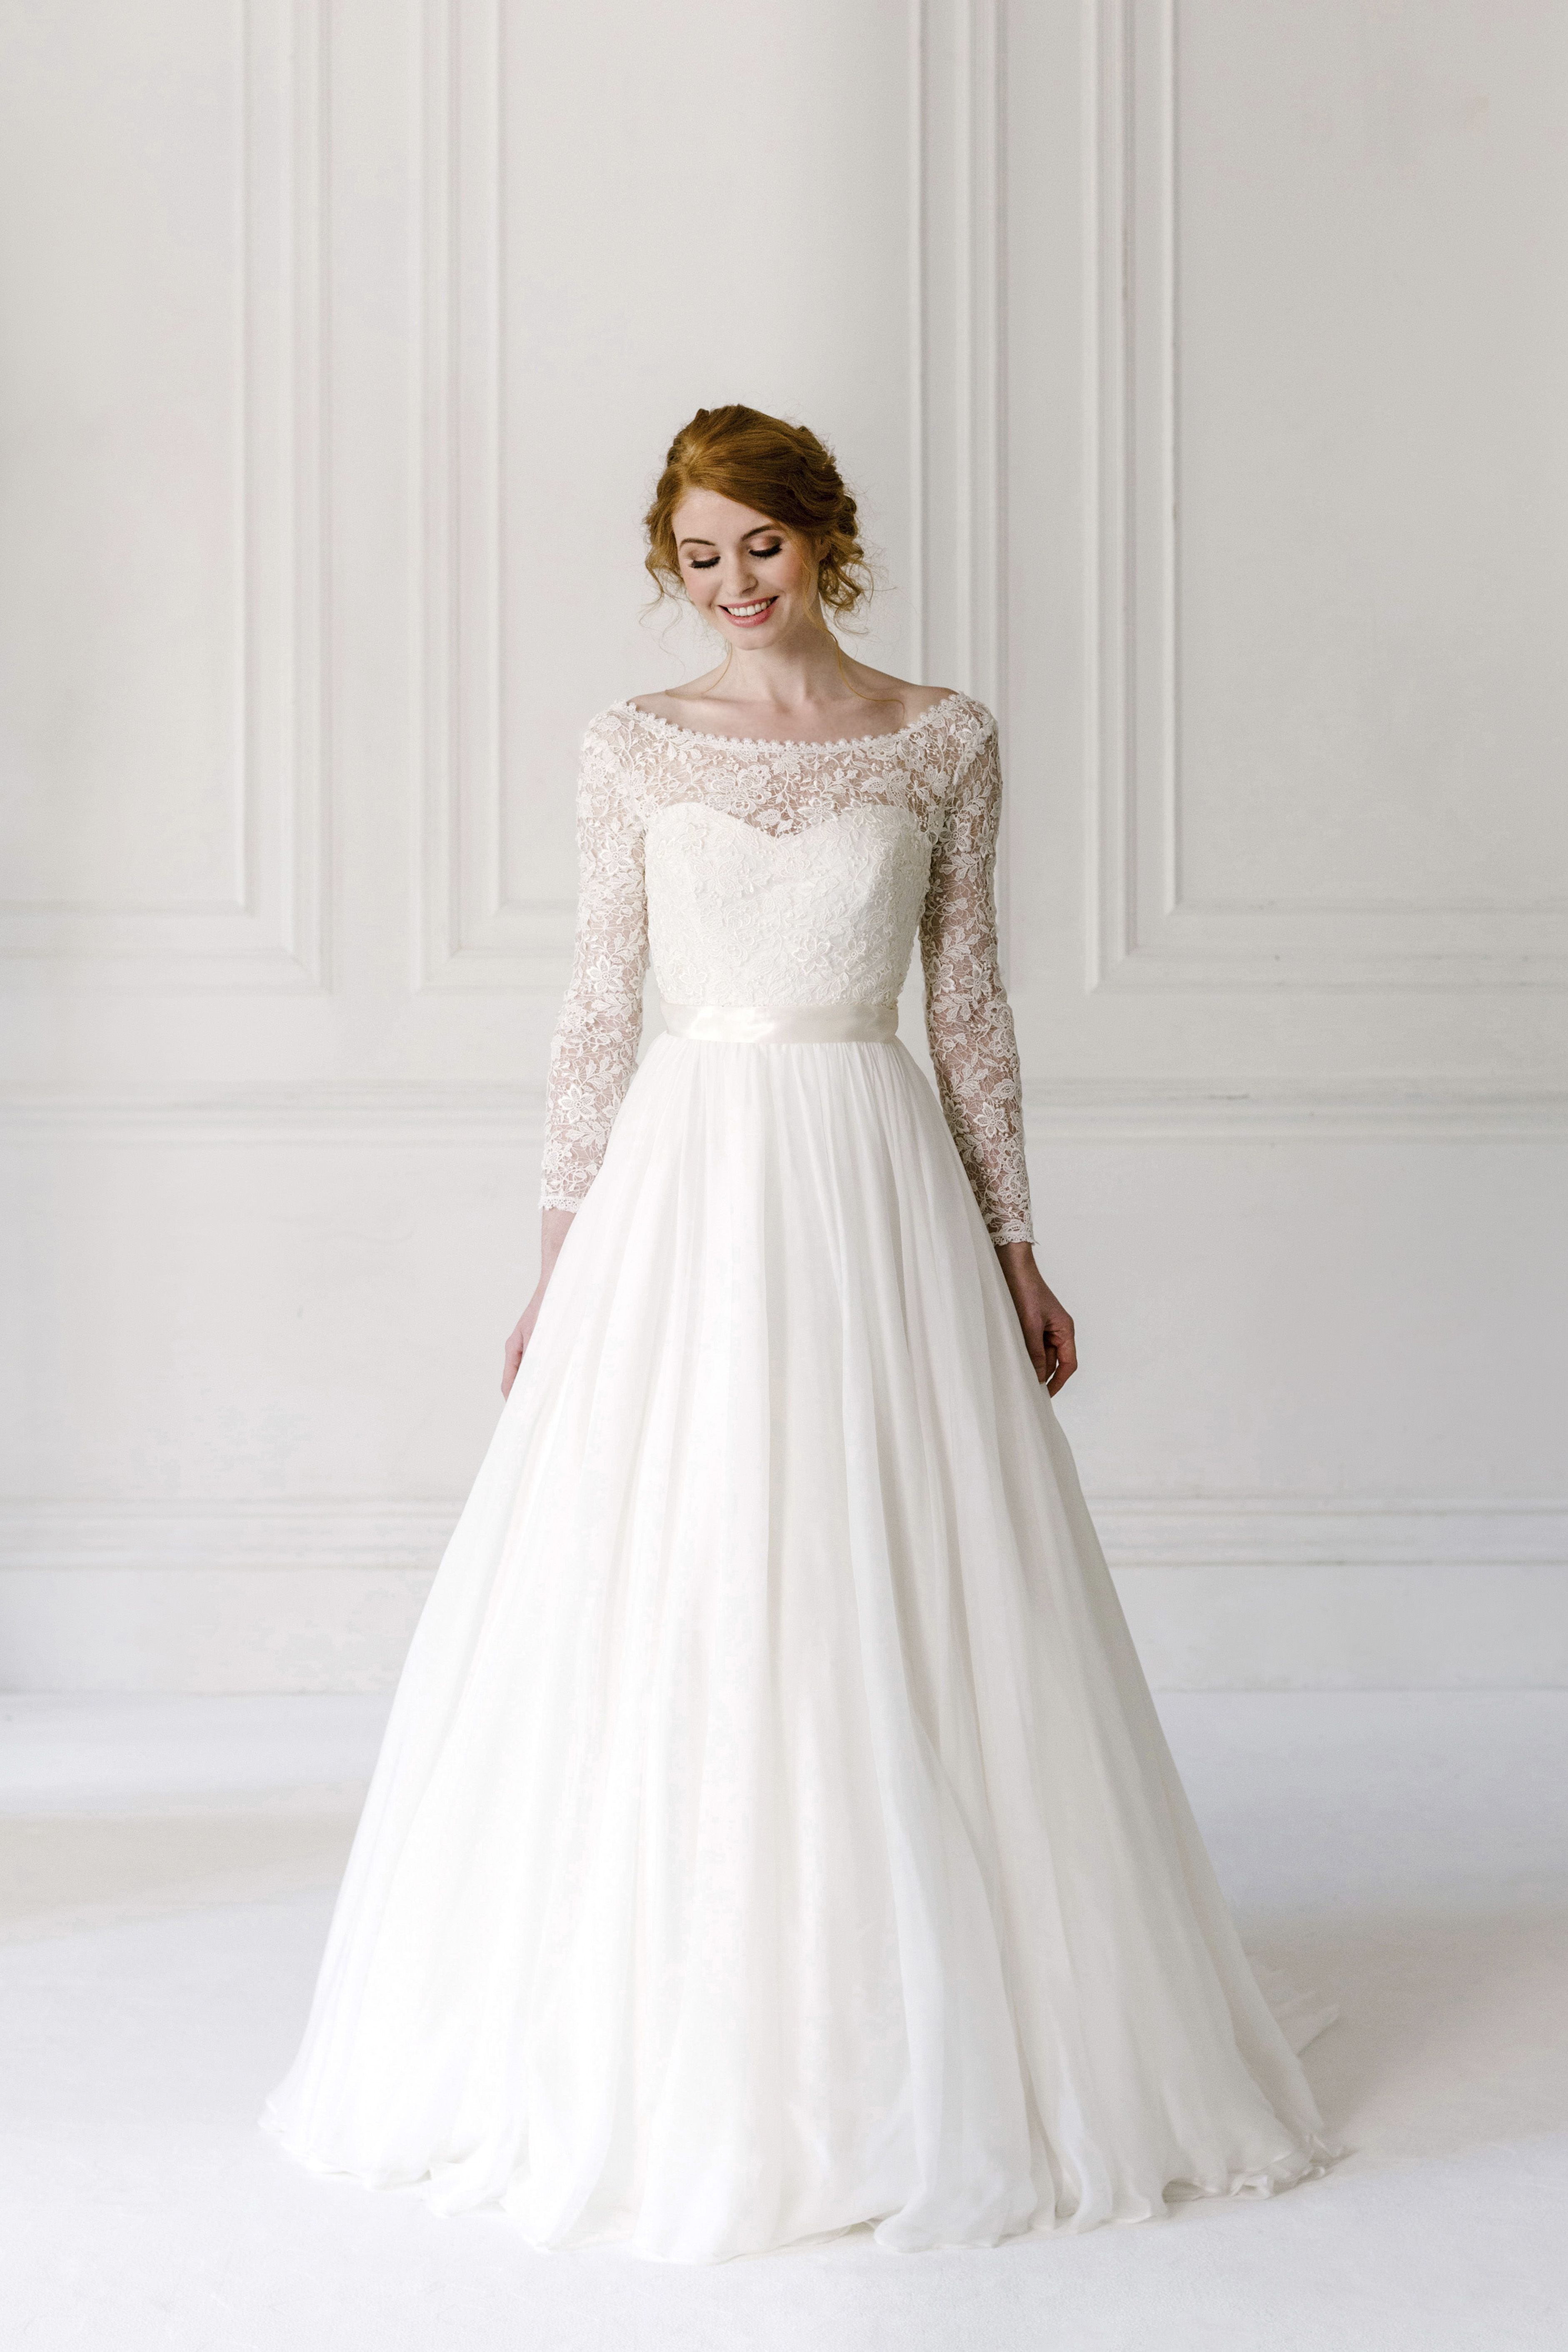 Naomi neoh uivory fleuru wedding dress with guipure lace jacket from